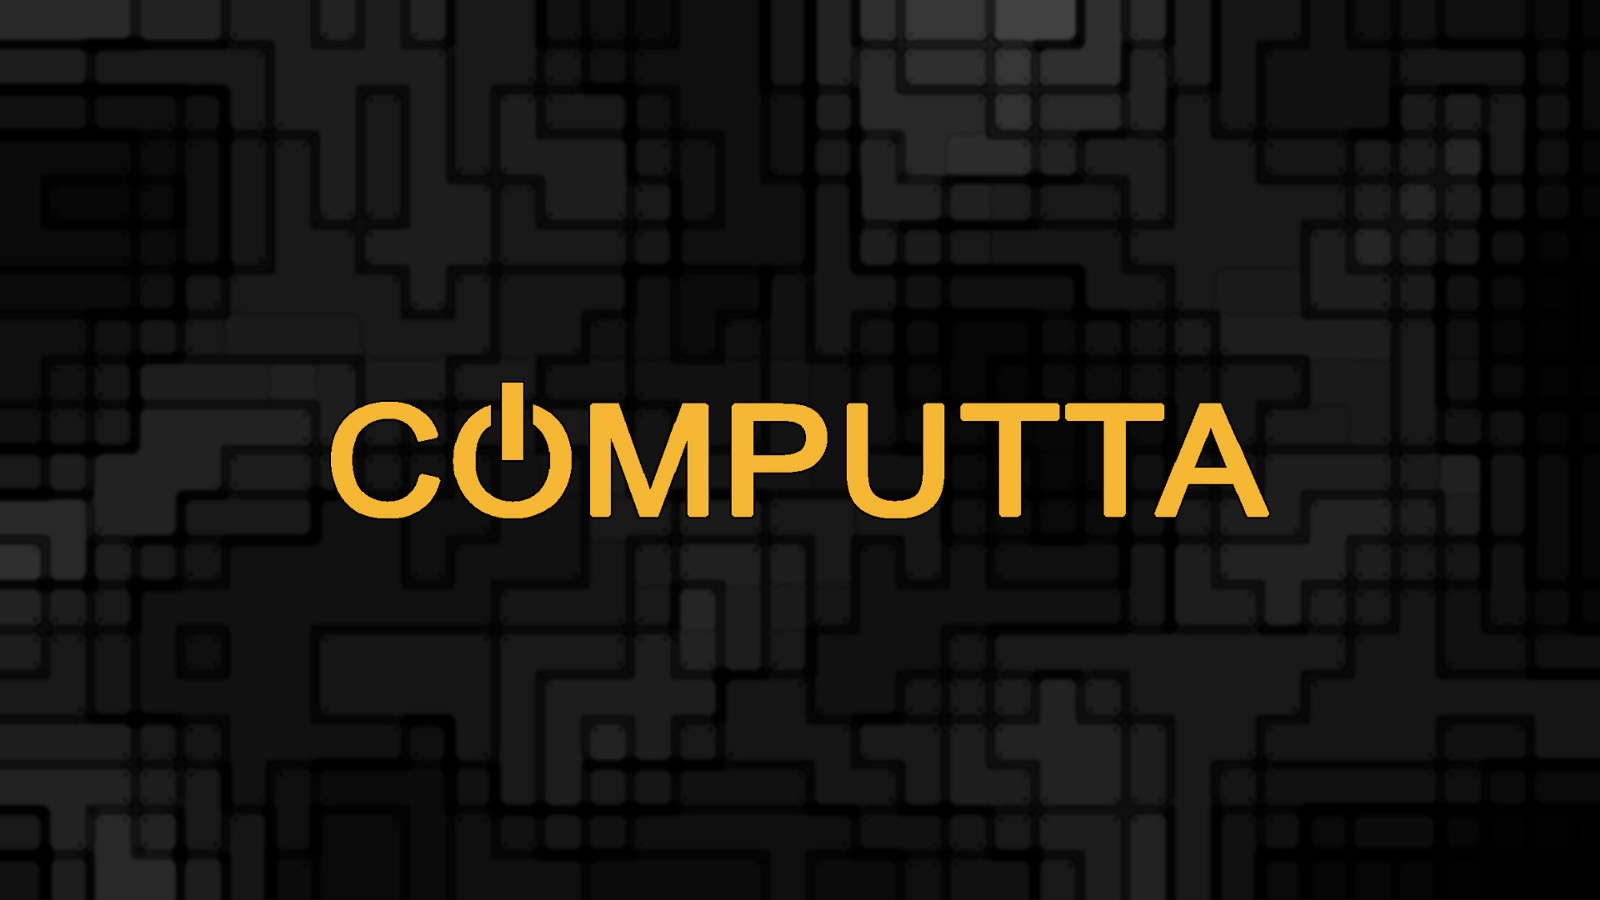 Quick and easy step by step guide to mine bitcoin at home with computta ccuart Choice Image